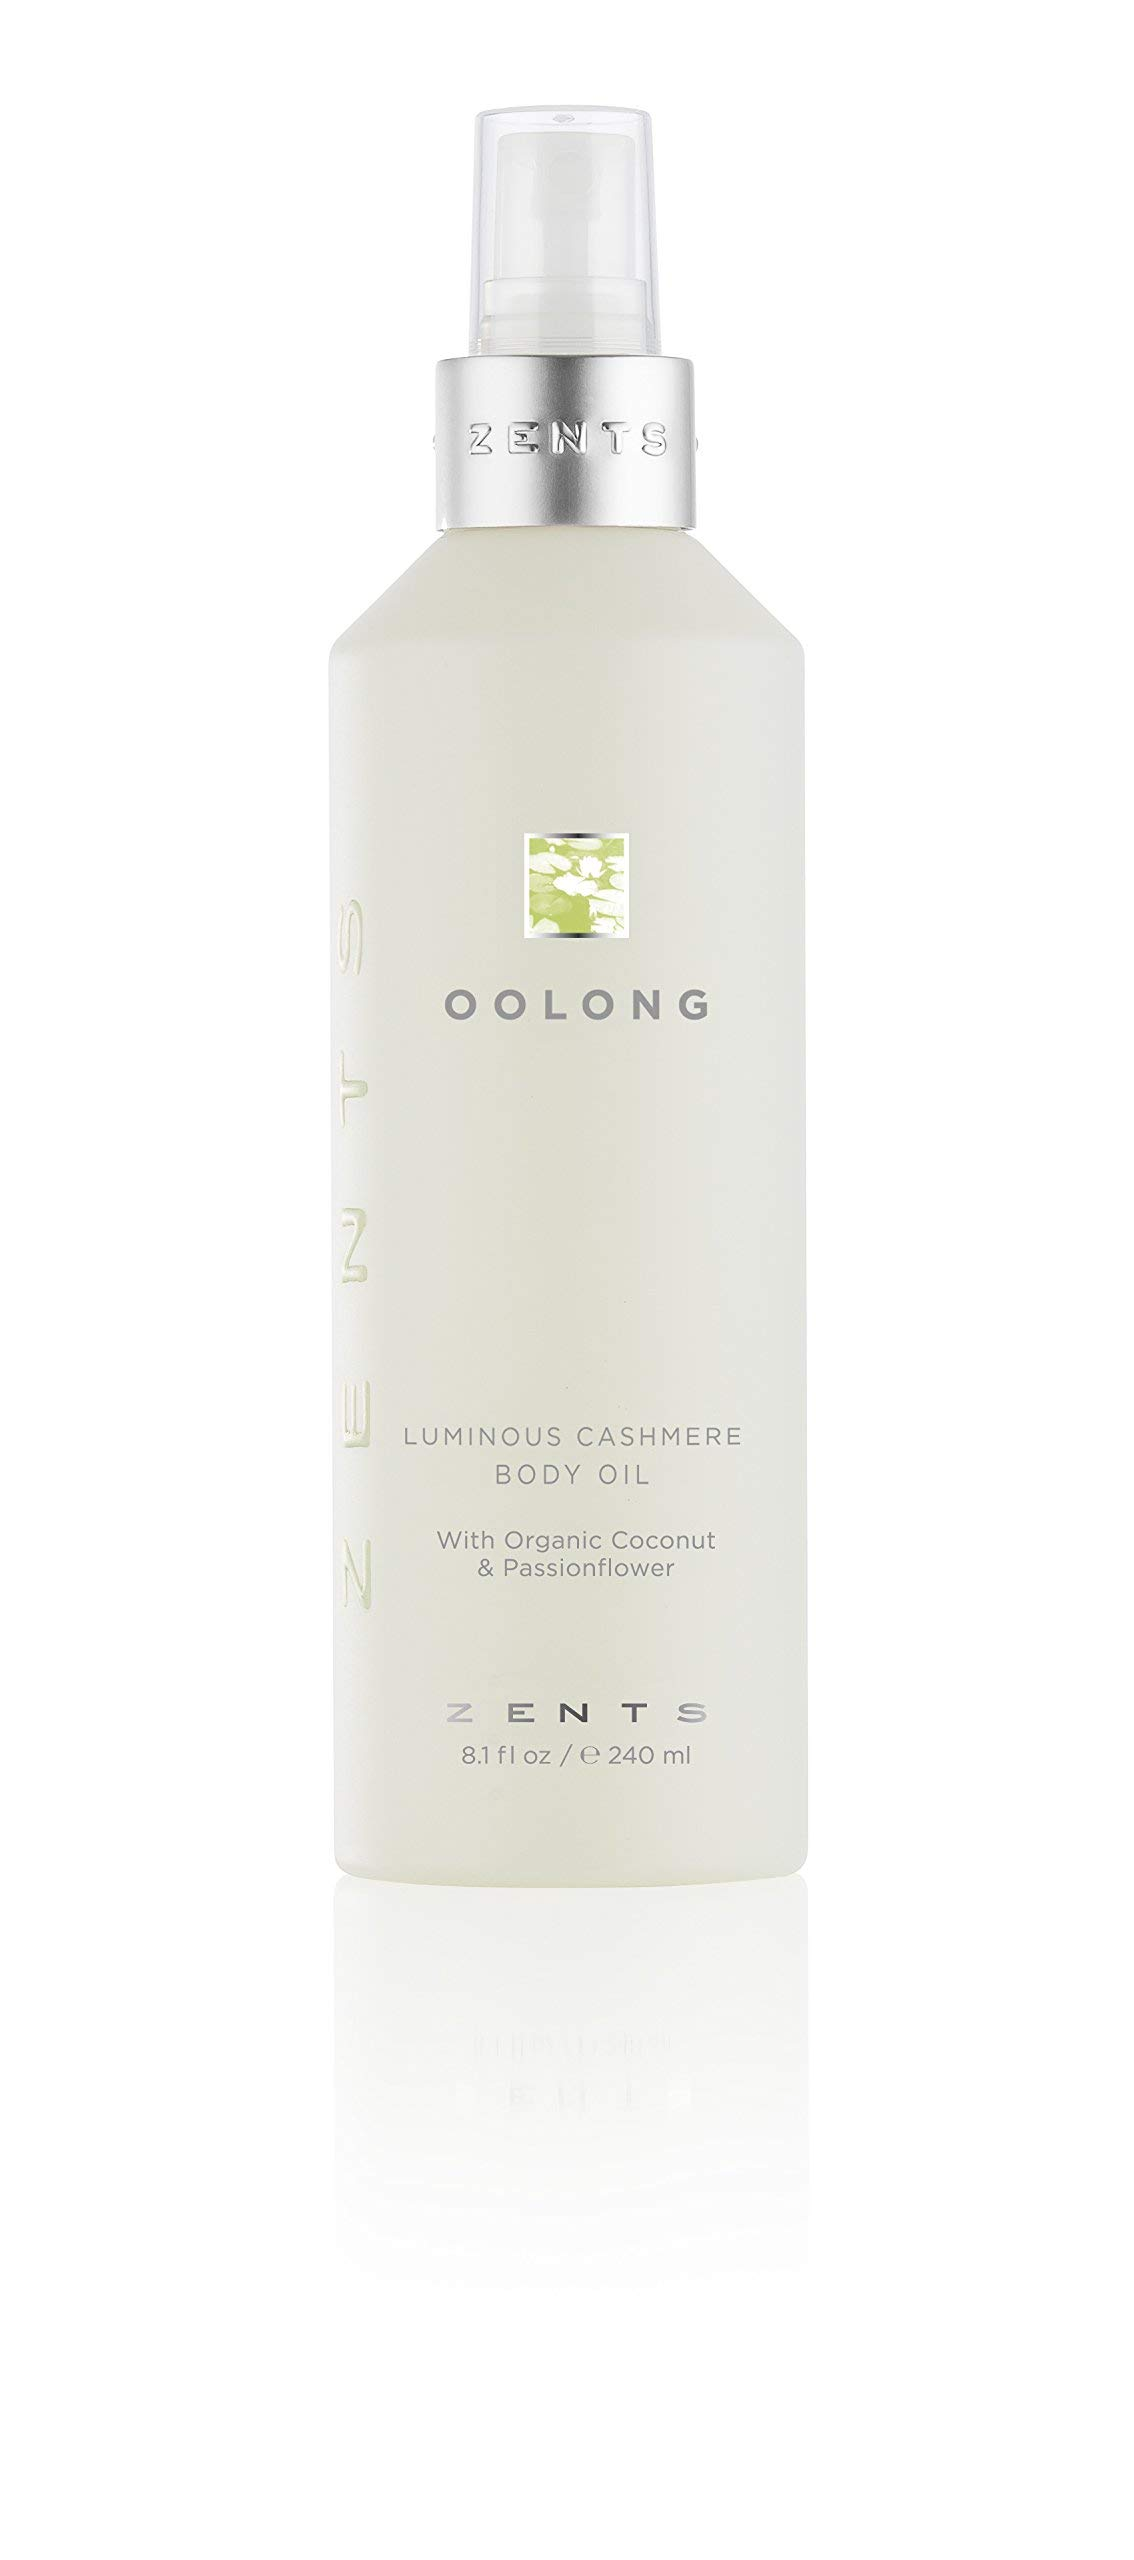 Zents Luminous Cashmere Body Oil, Soften and Moisturize Skin with Vitamin E and Organic Coconut Oil, 8 fl oz / 240 ml (Oolong)